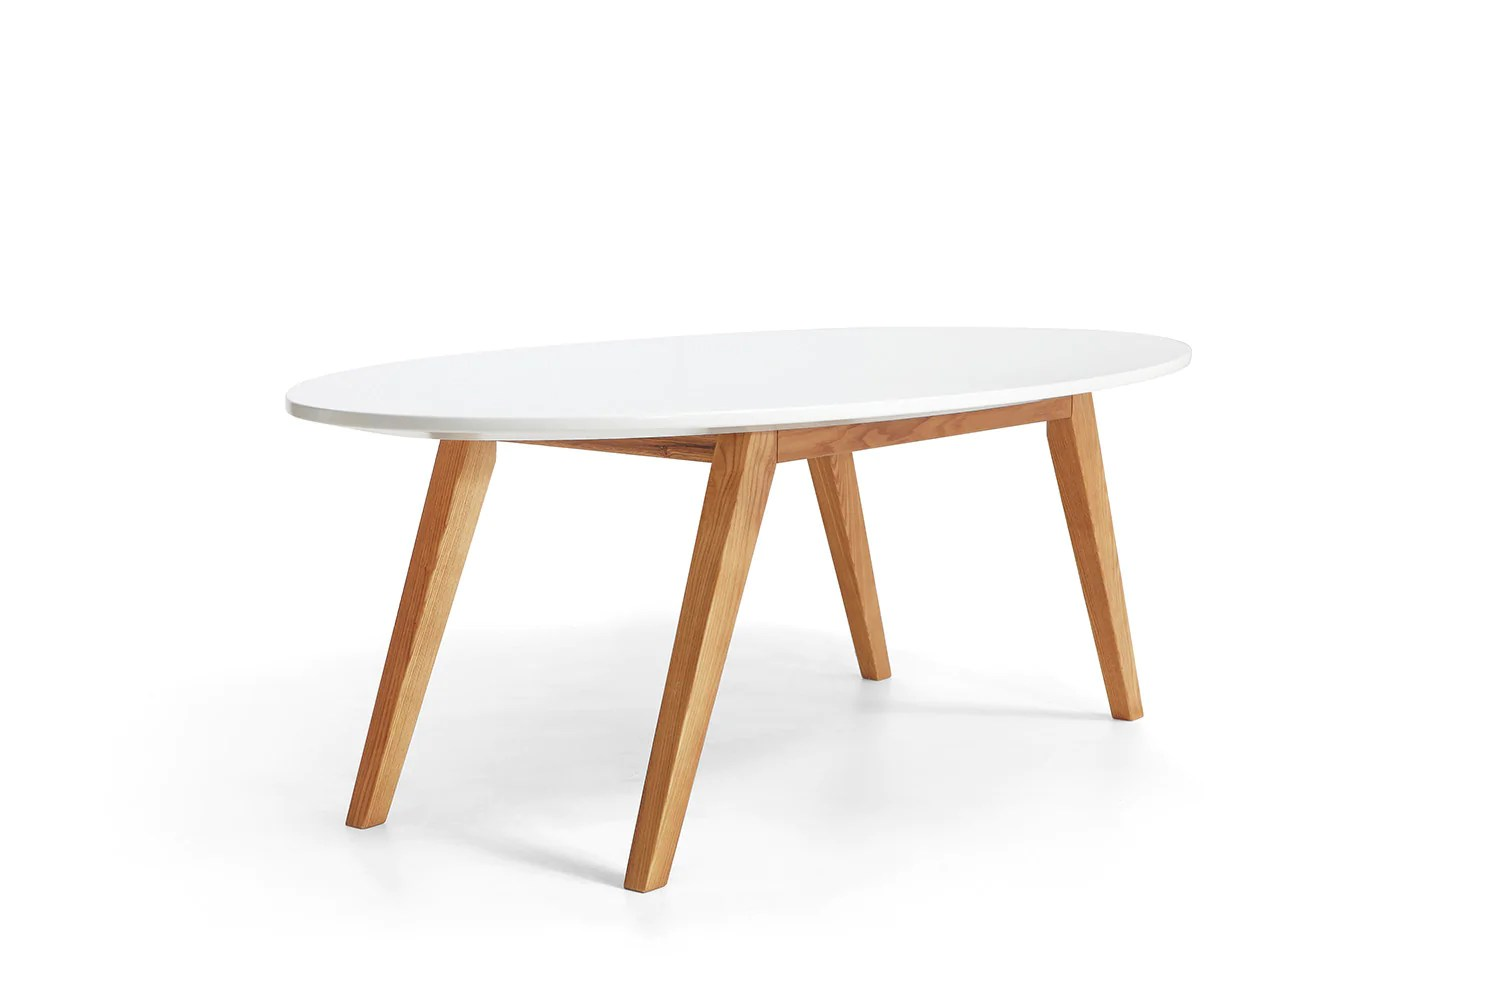 Table Basse Blanche Design Table Basse Design En Bois Blanche Bâle Dewarens